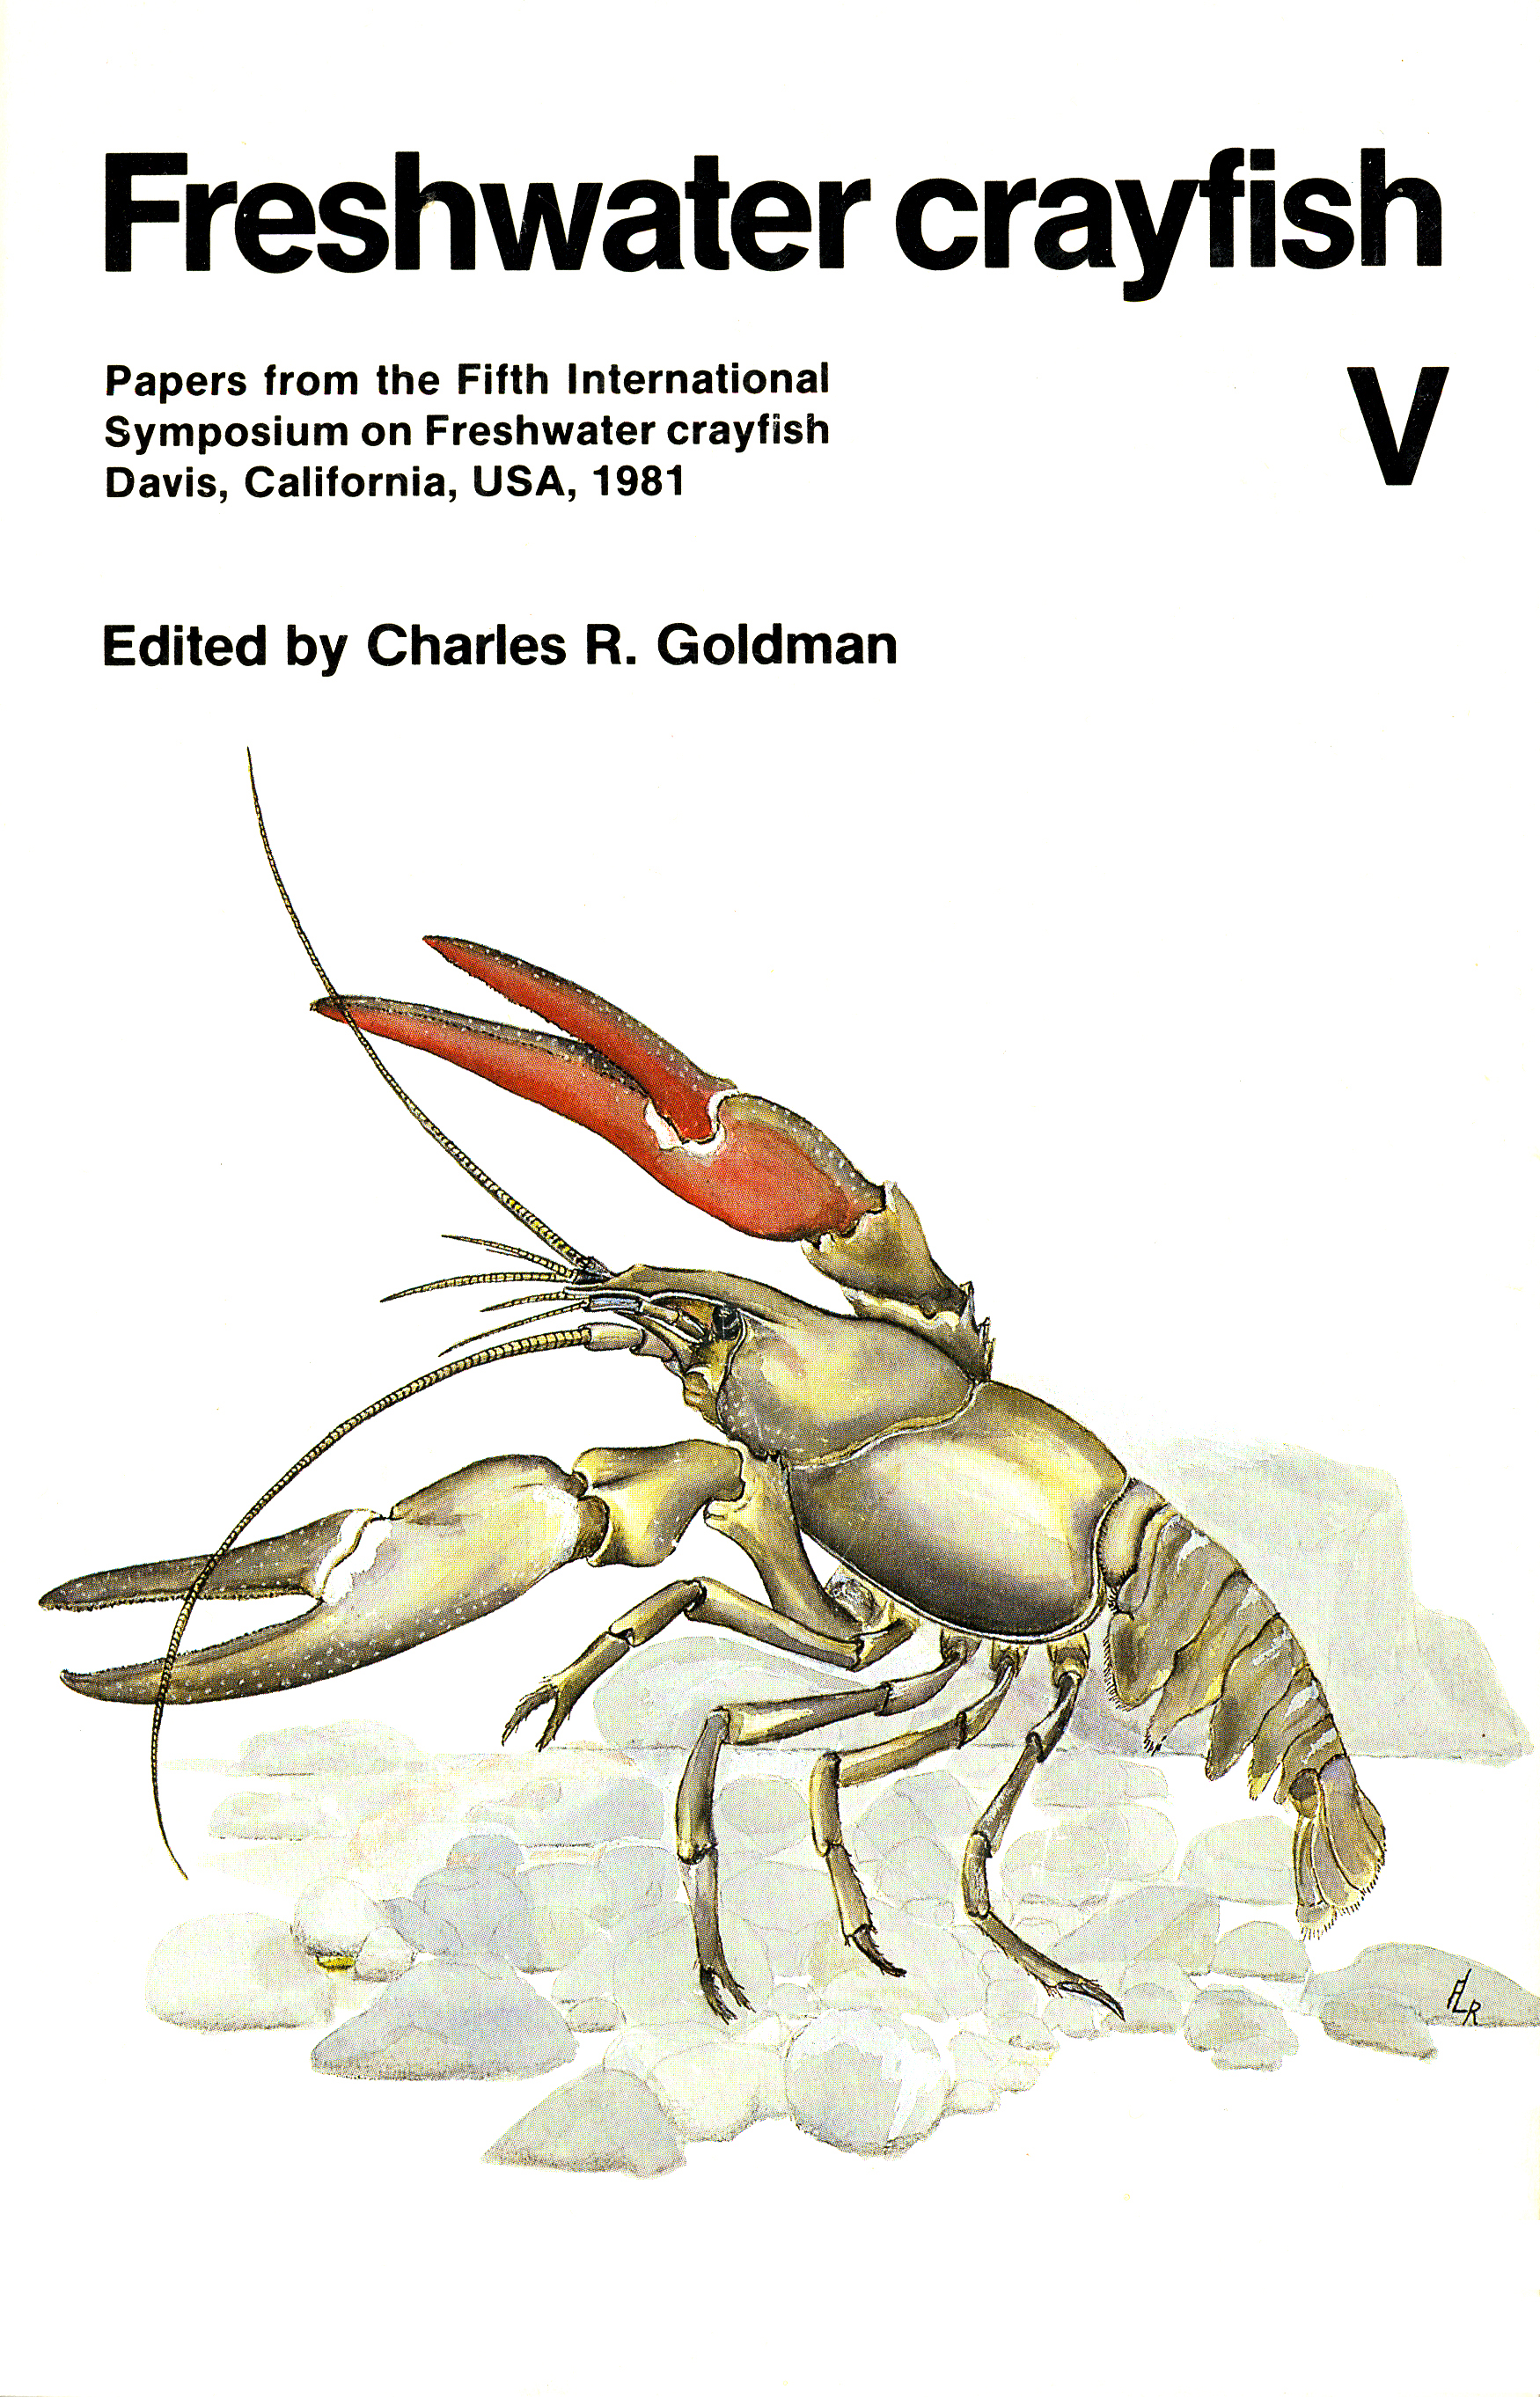 Sexual dimorphism as seen in the crayfish is